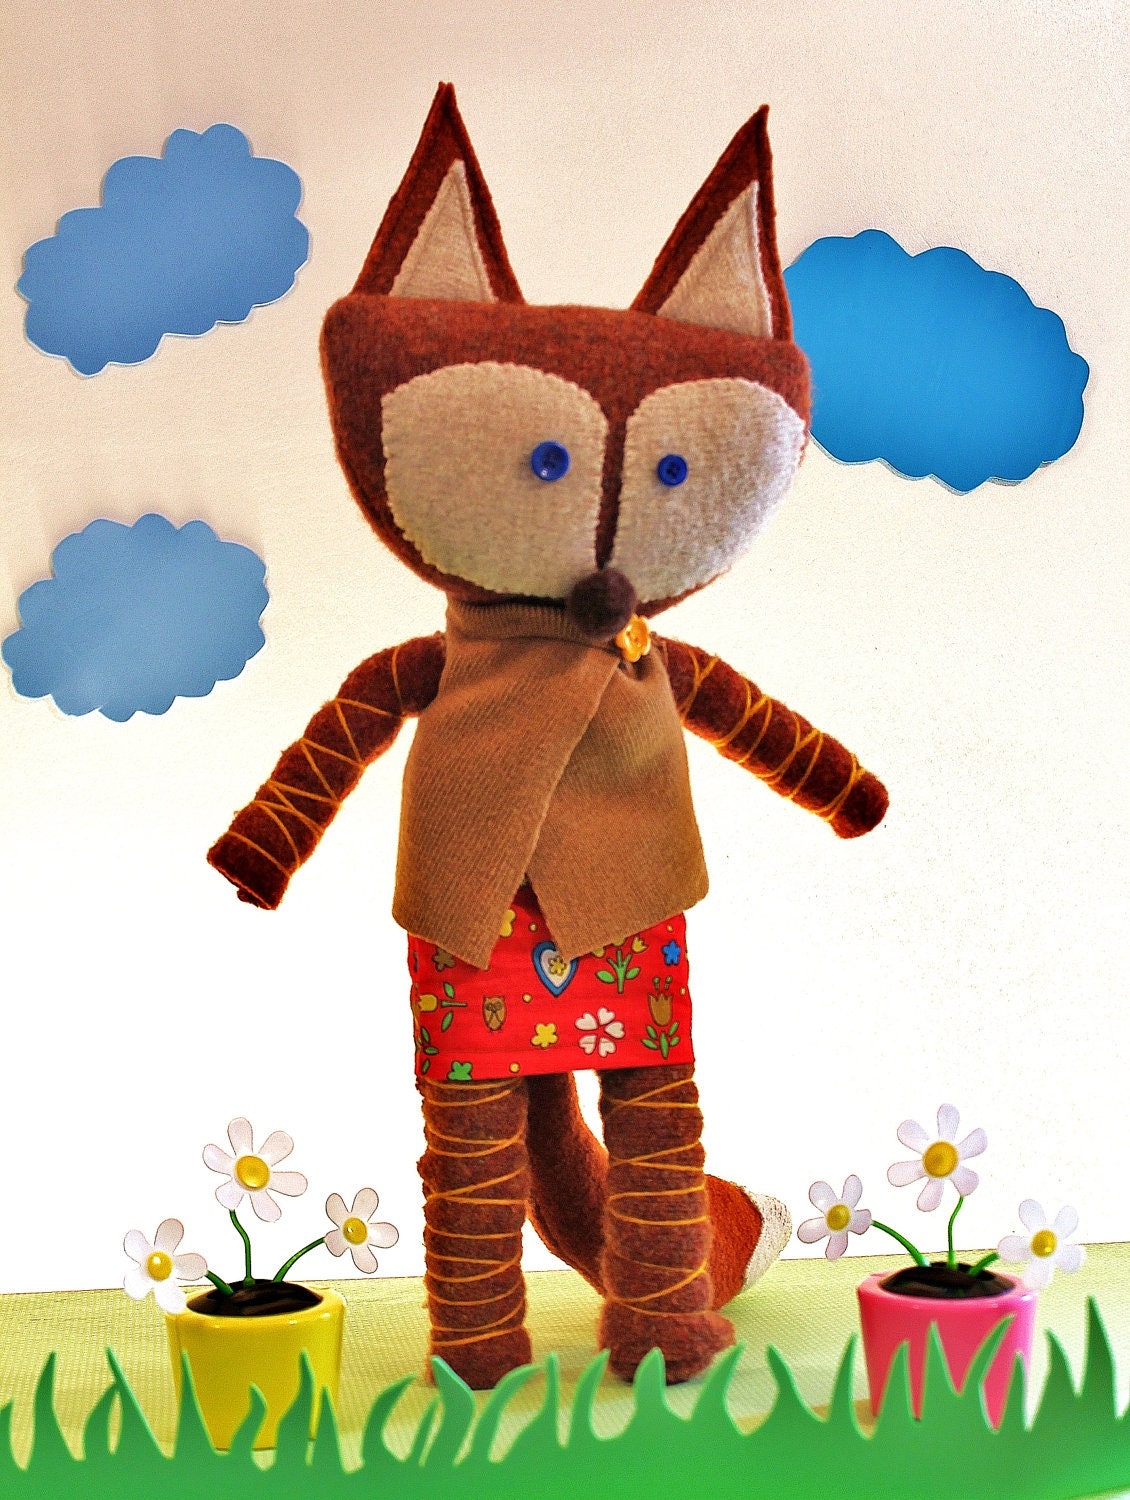 Woodland Nursery Decor, Fox Plush made from Upcycled Sweaters, Eco Friendly Kids Toy - OllieAndRose